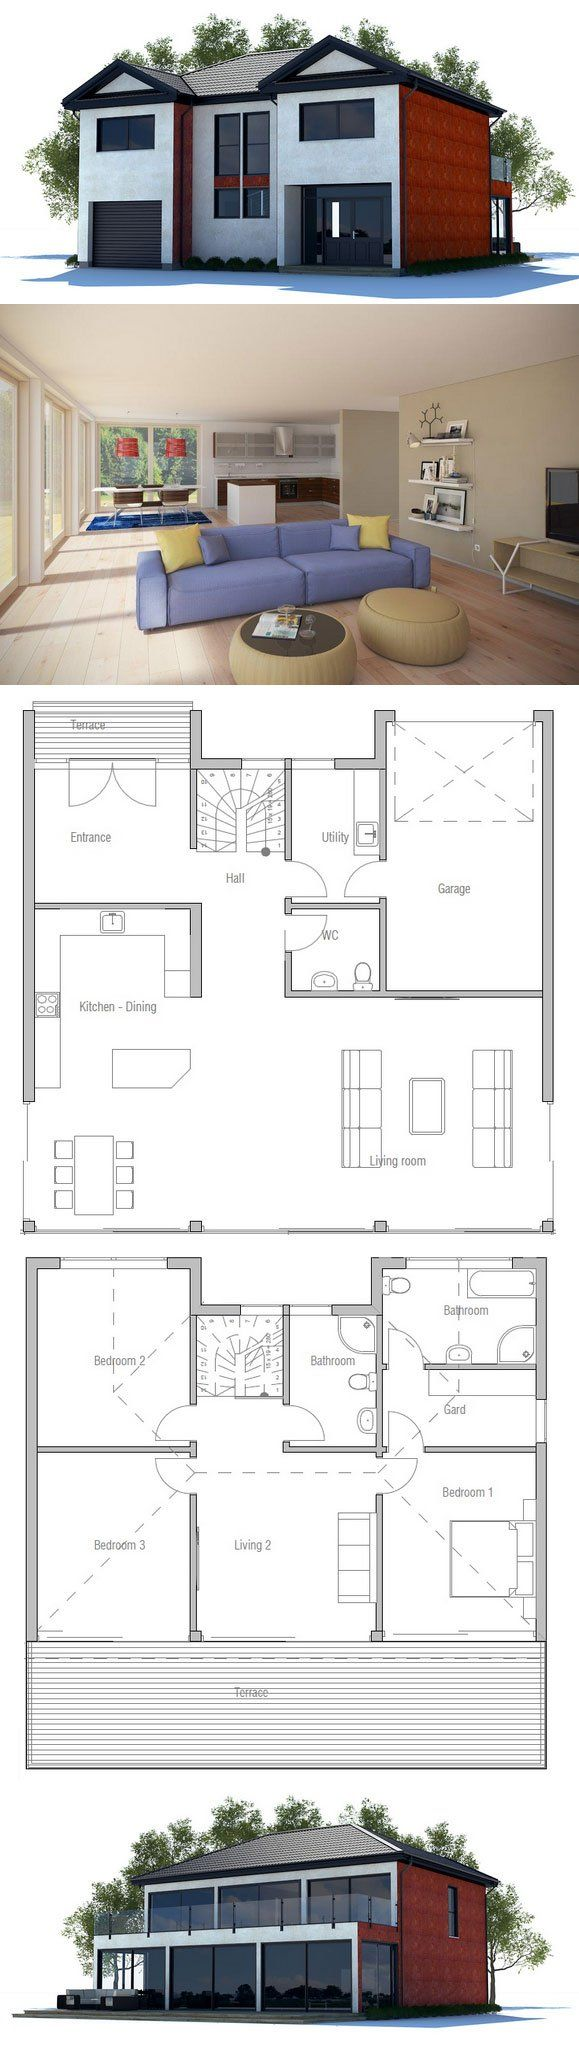 Modern House Plan with large windows, two living areas, three bedrooms. Floor Plan from ConceptHome.com